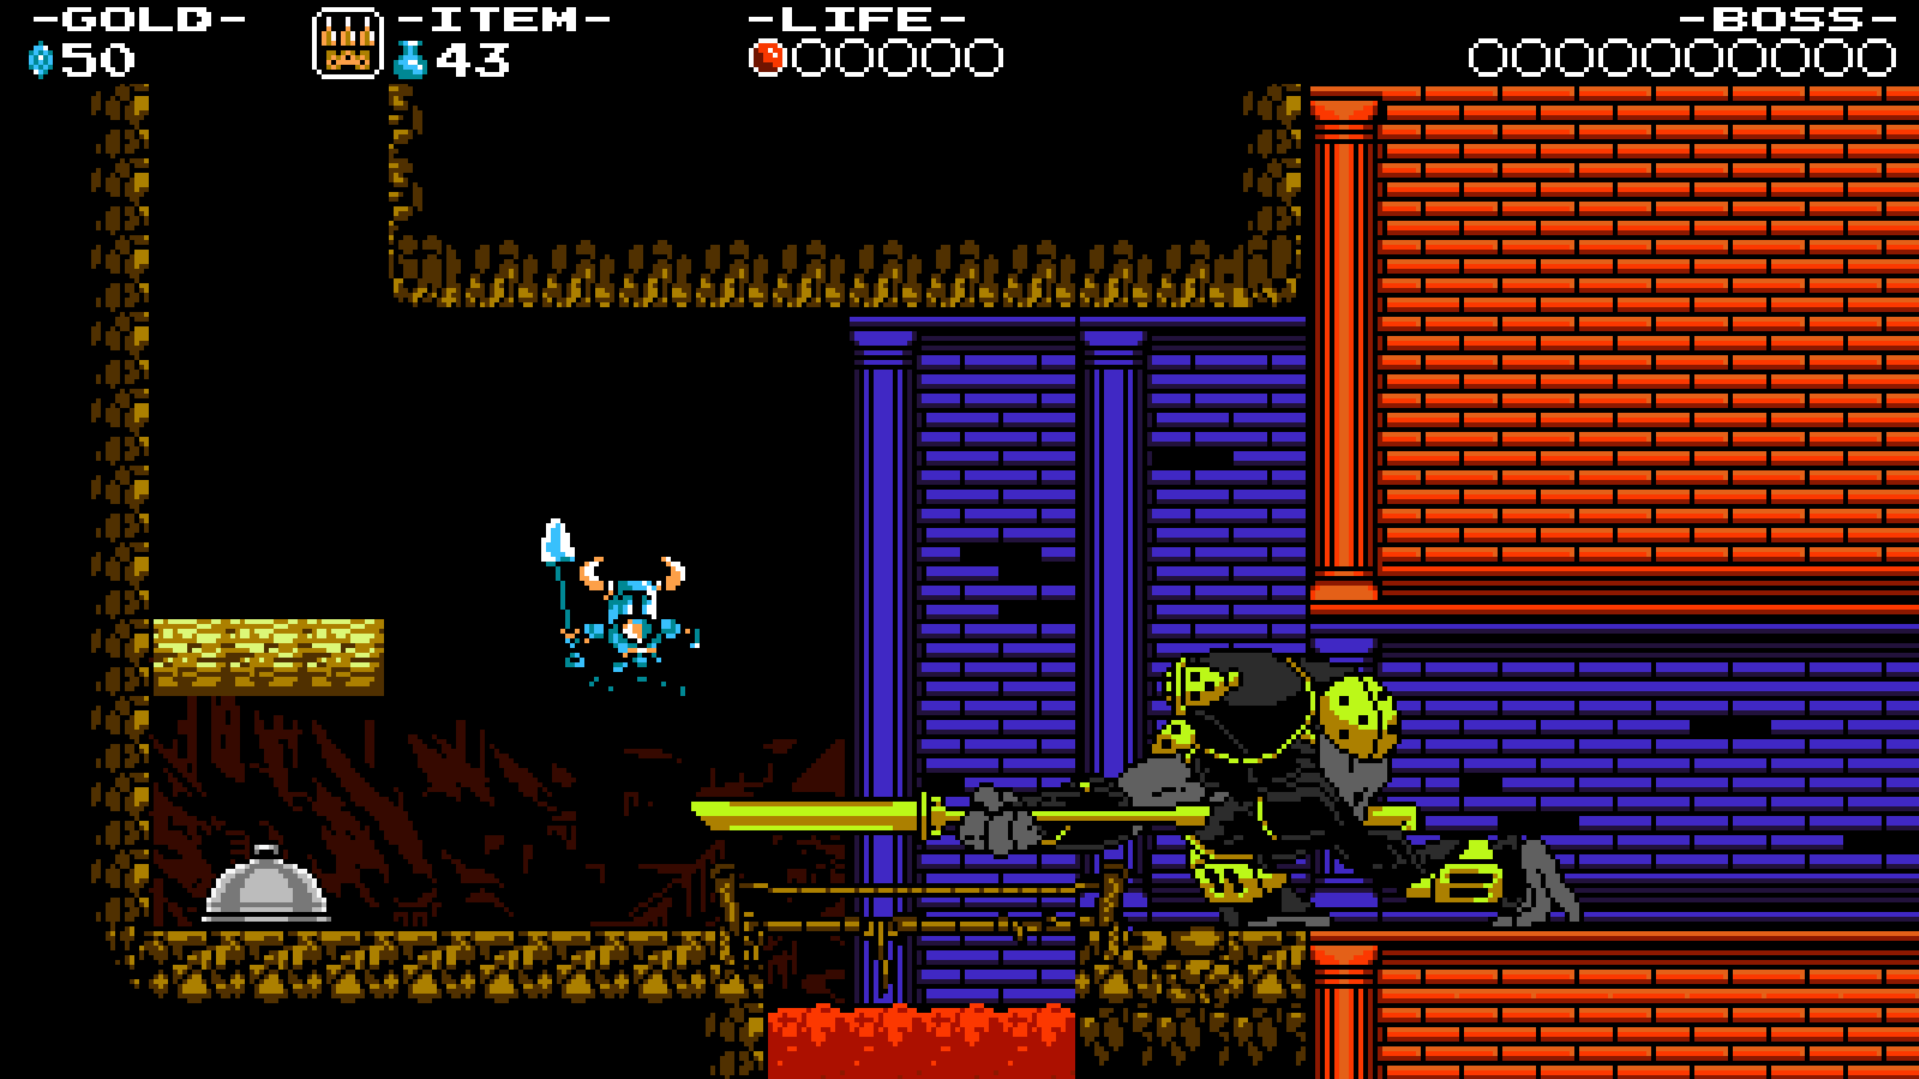 Prepare your gardening tools as Shovel Knight will arrive on 3DS early next year